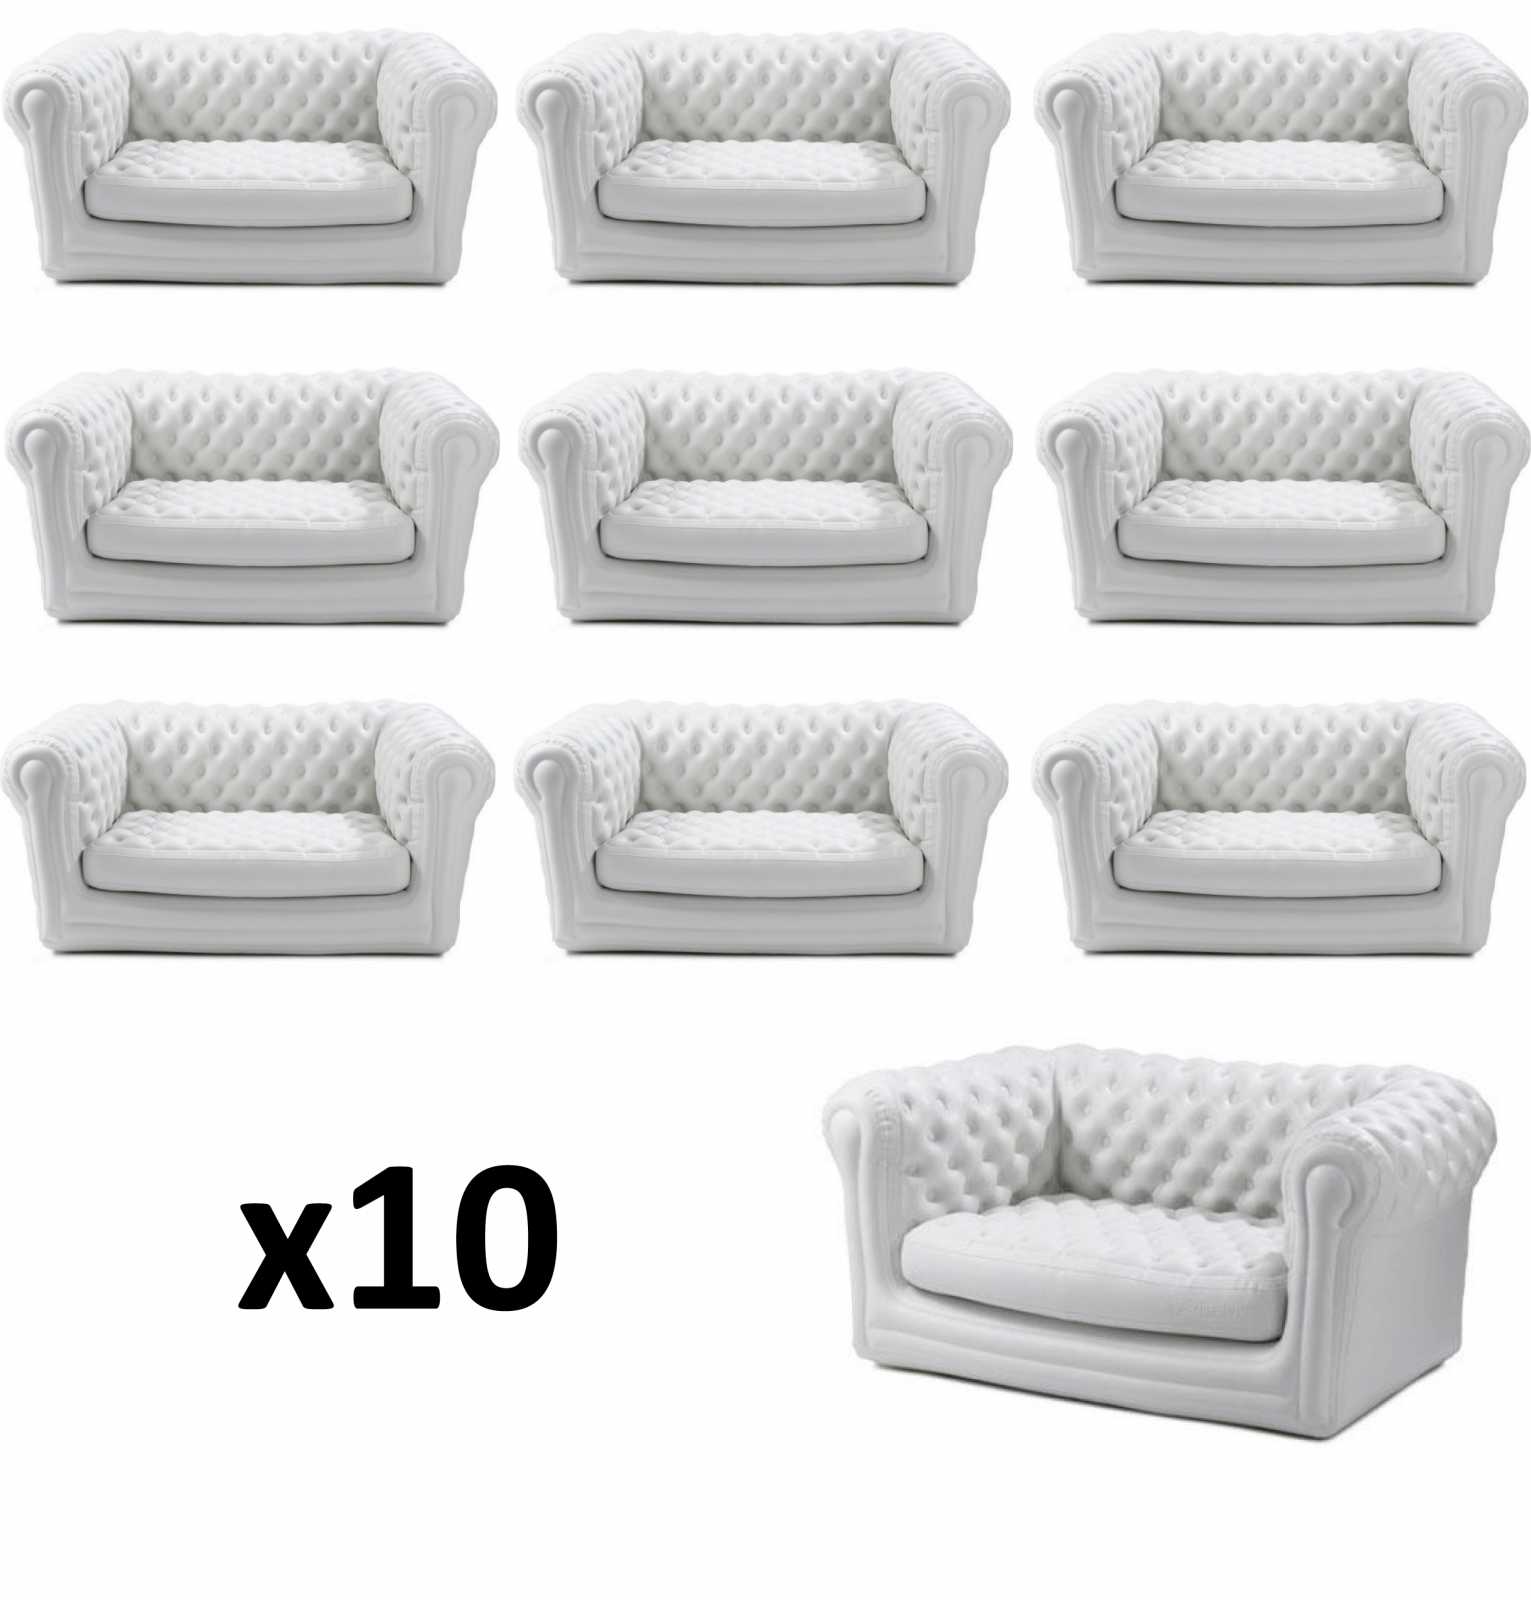 Location canap blanc chesterfield gonflable - Canape chesterfield gonflable ...